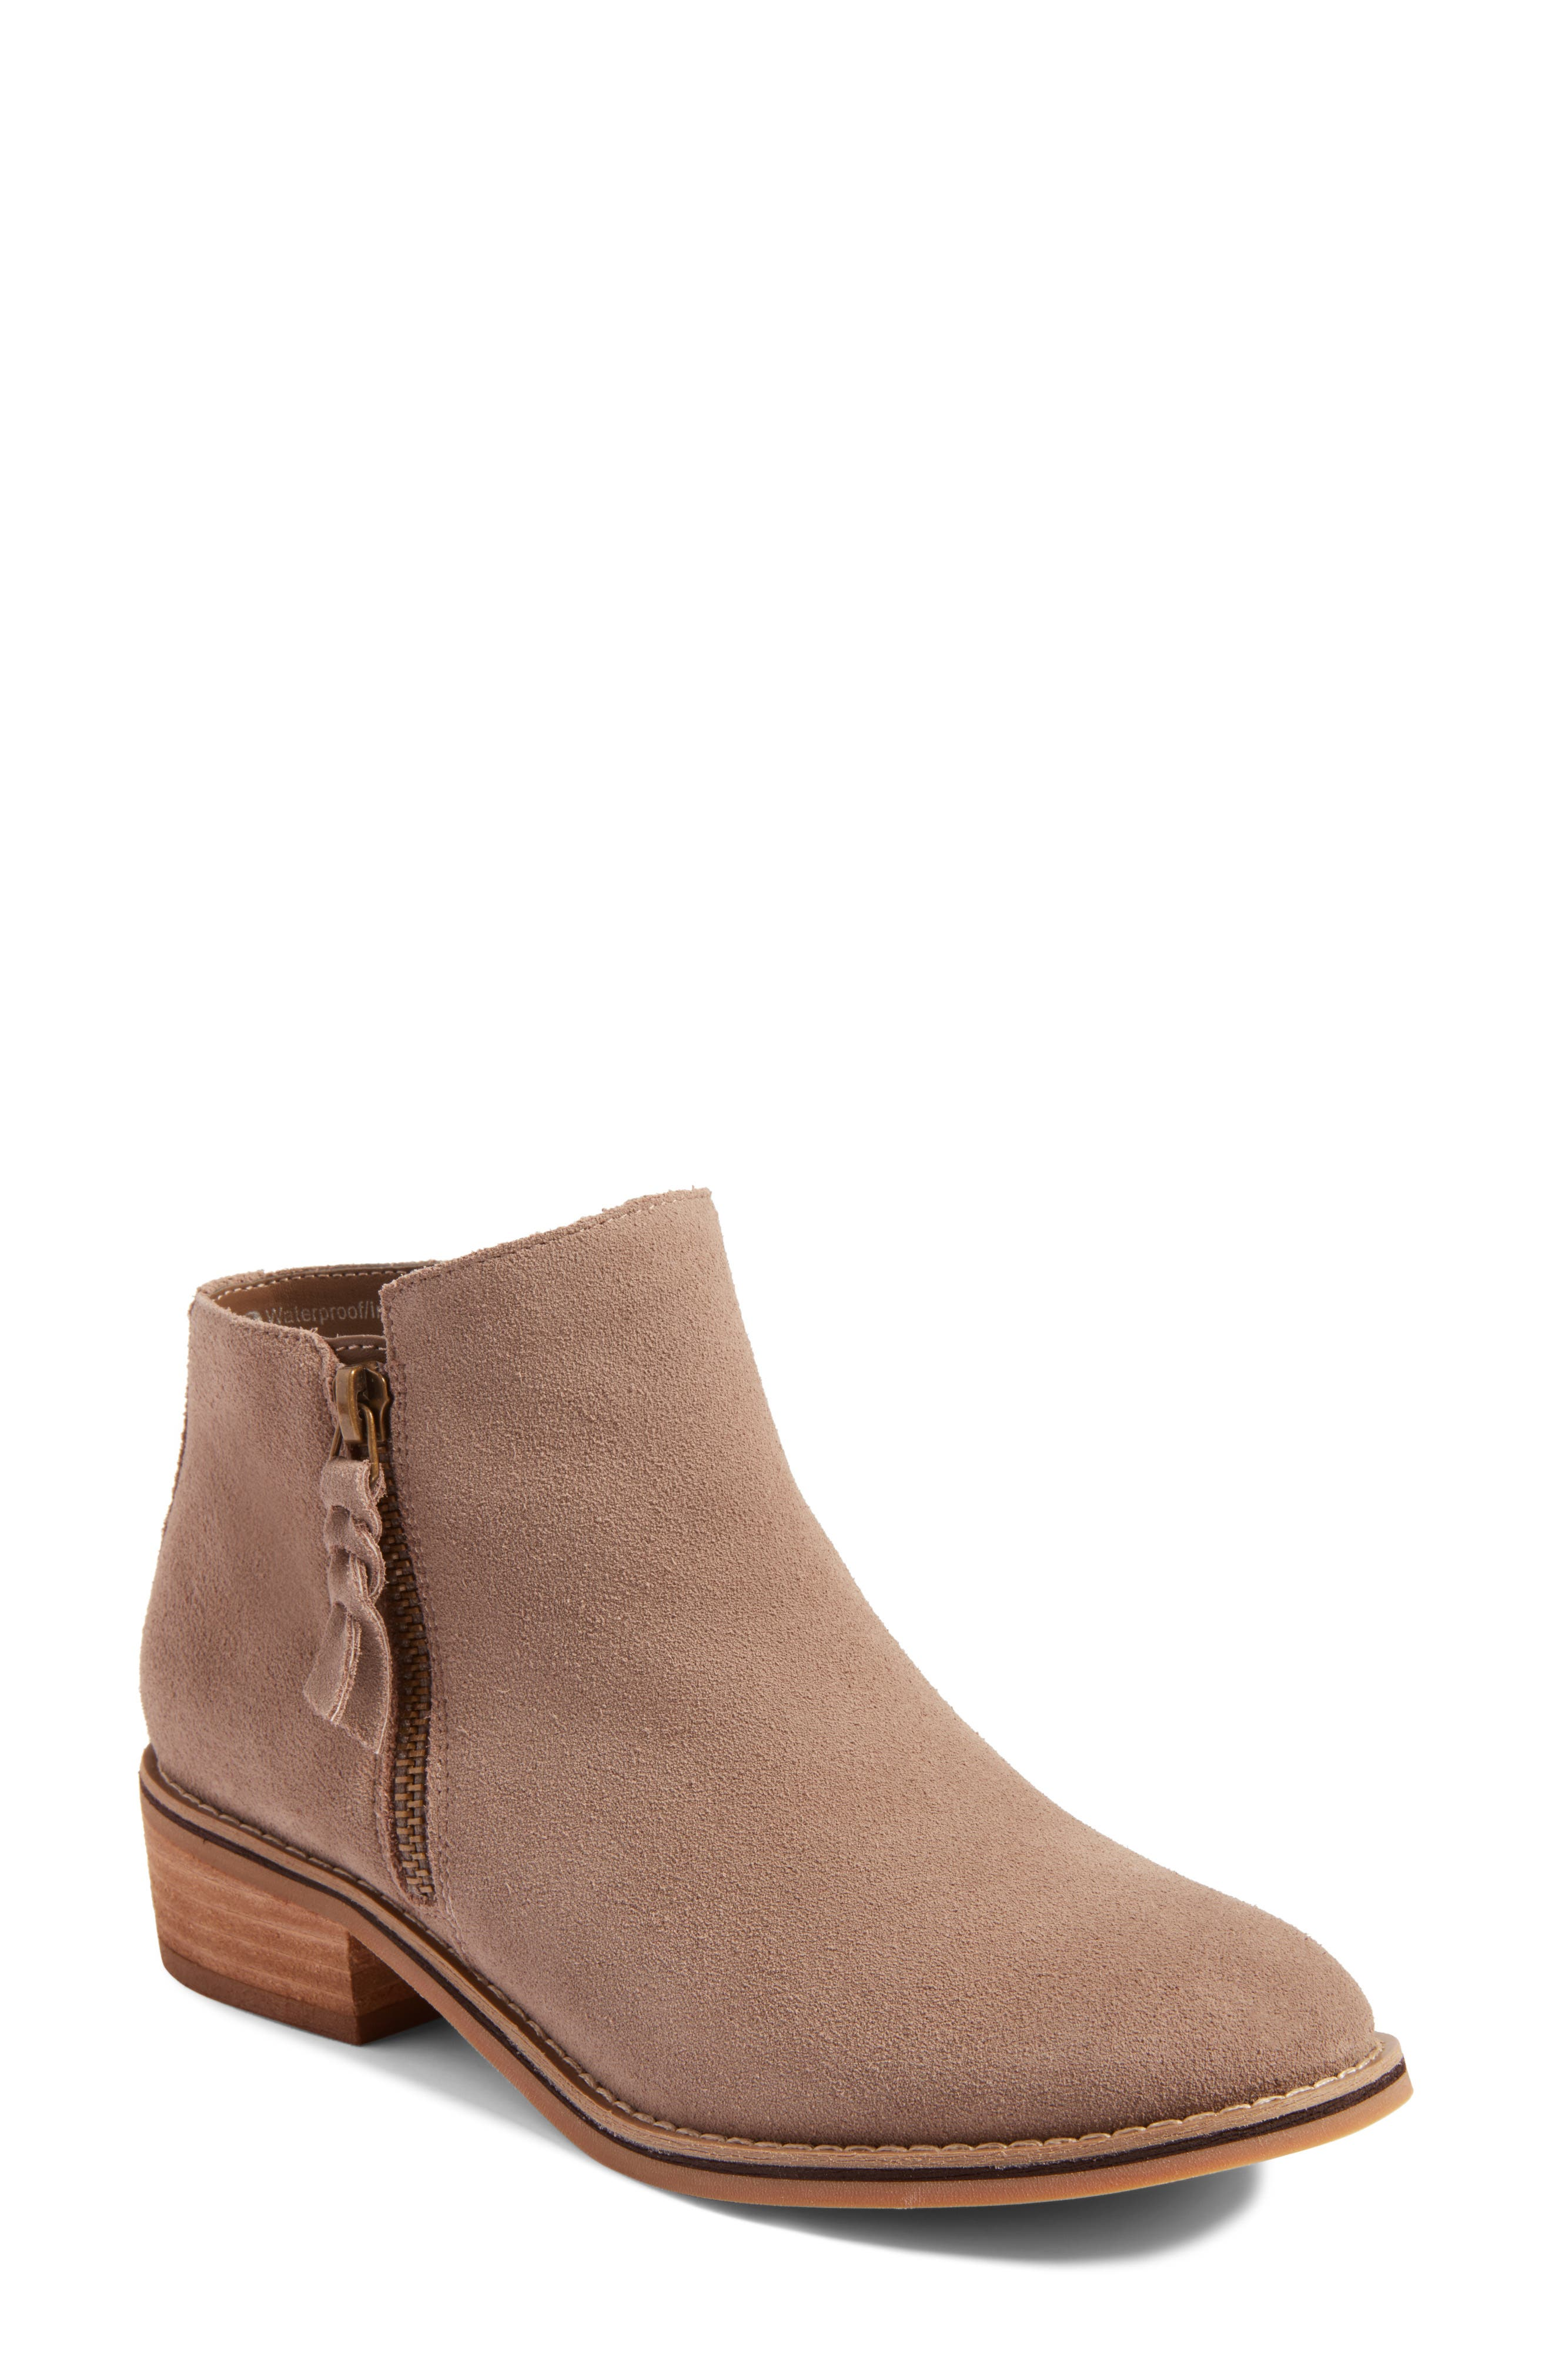 Blondo Liam Waterproof Bootie (Women)